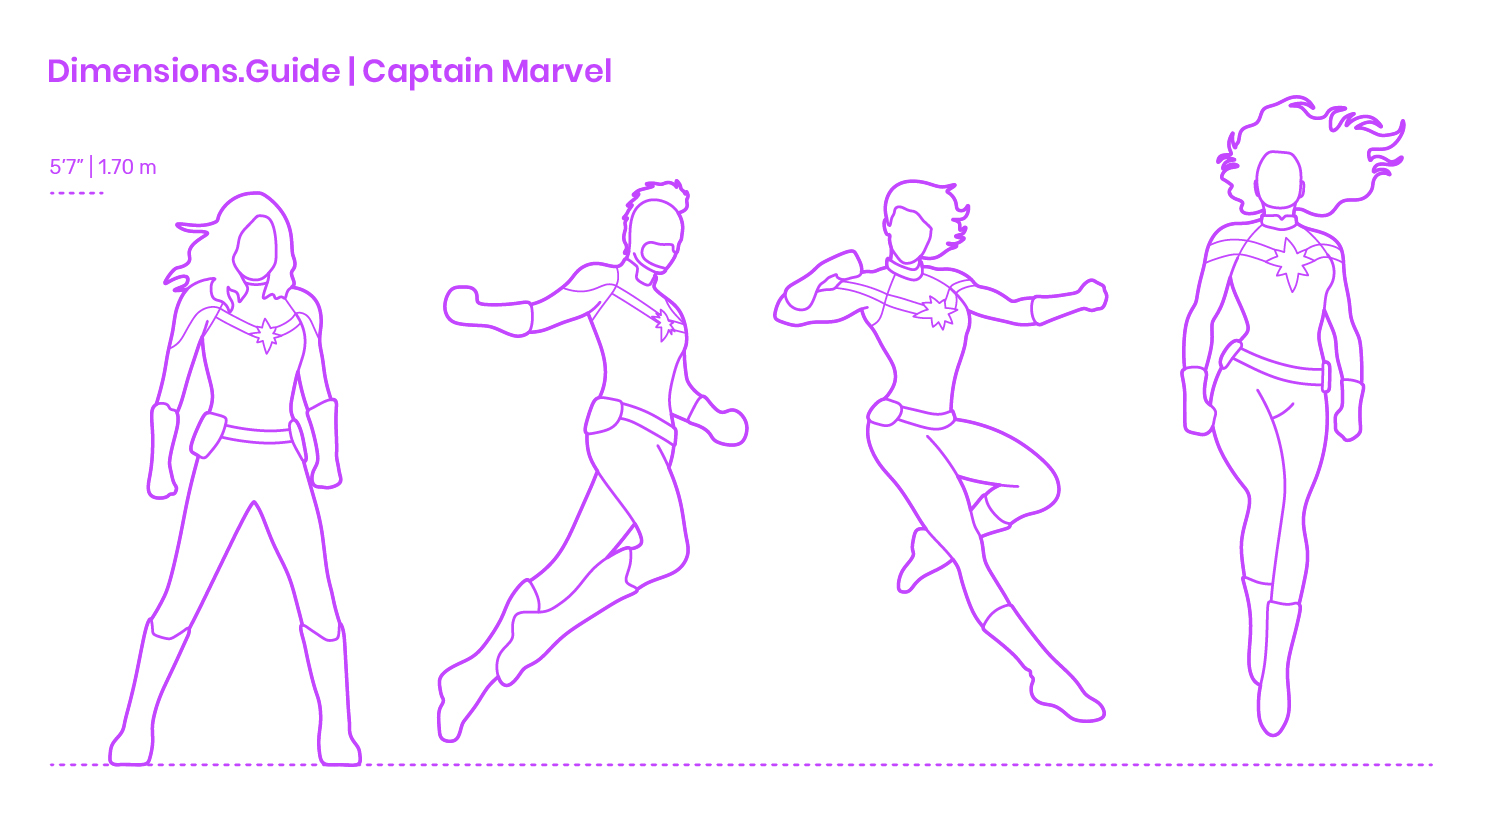 Captain Marvel Dimensions & Drawings   Dimensions Guide